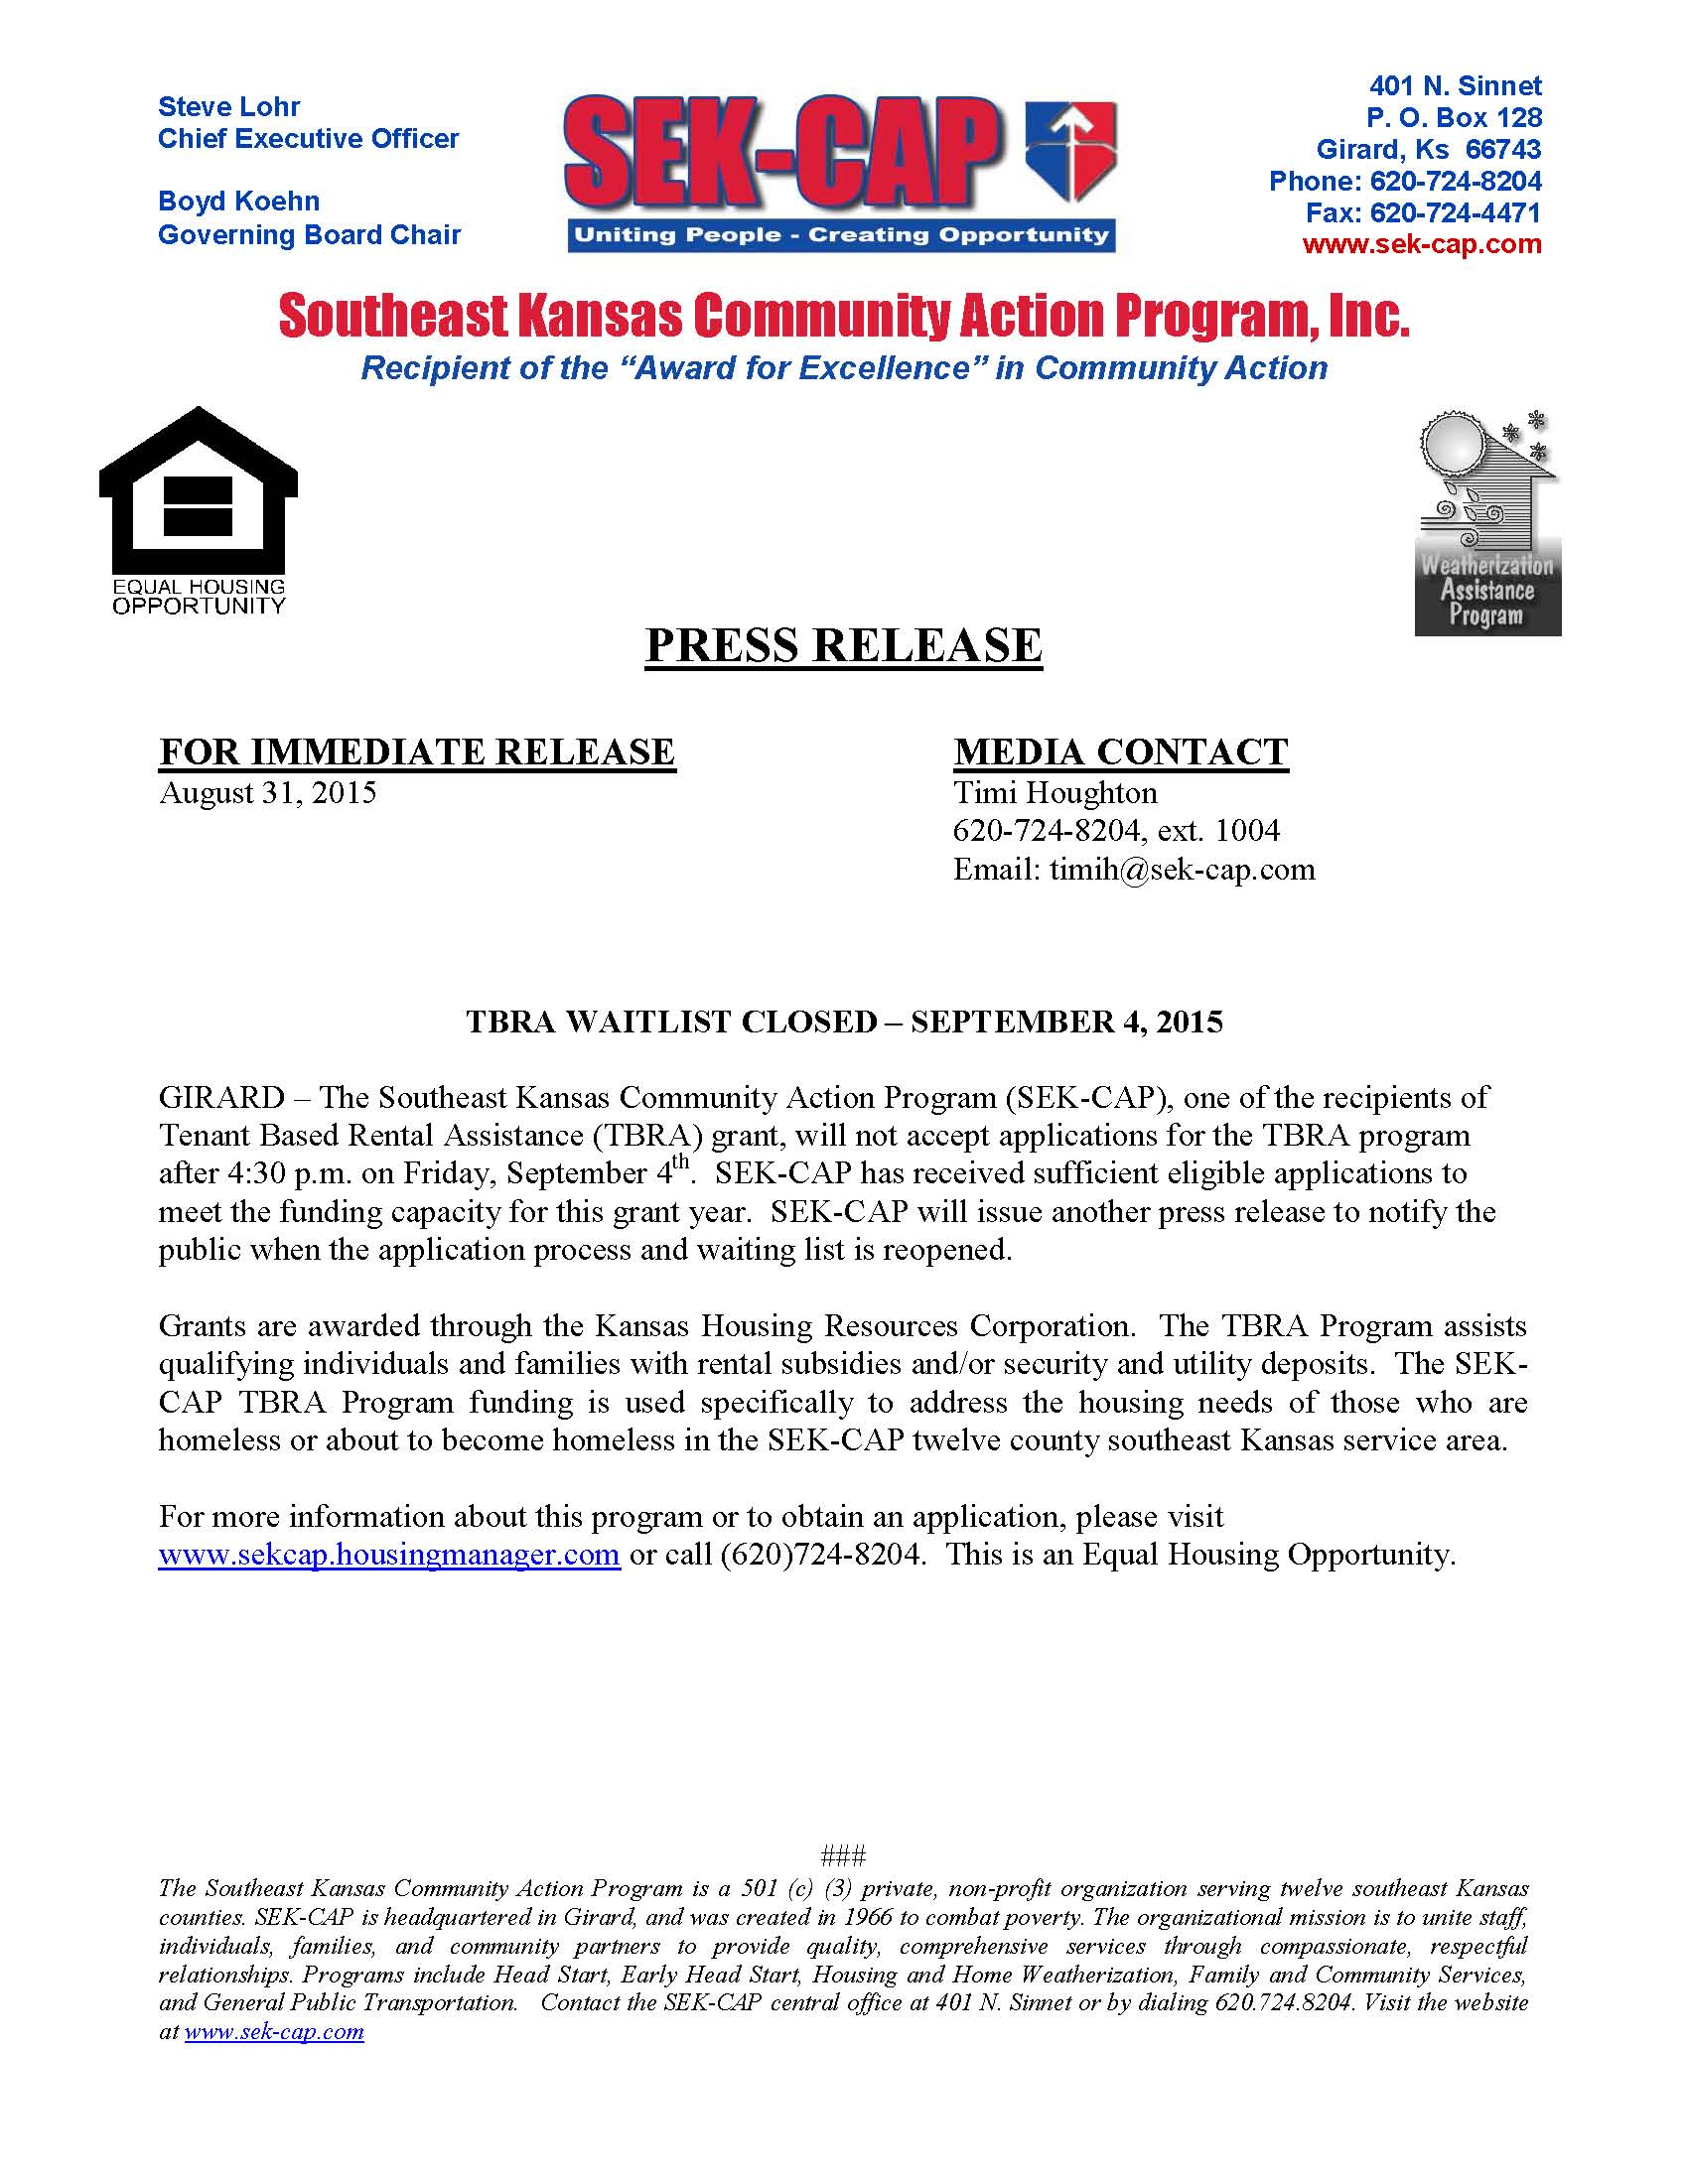 SEK CAP Press Release 8 31 2015 CLOSING TBRA WAITLIST